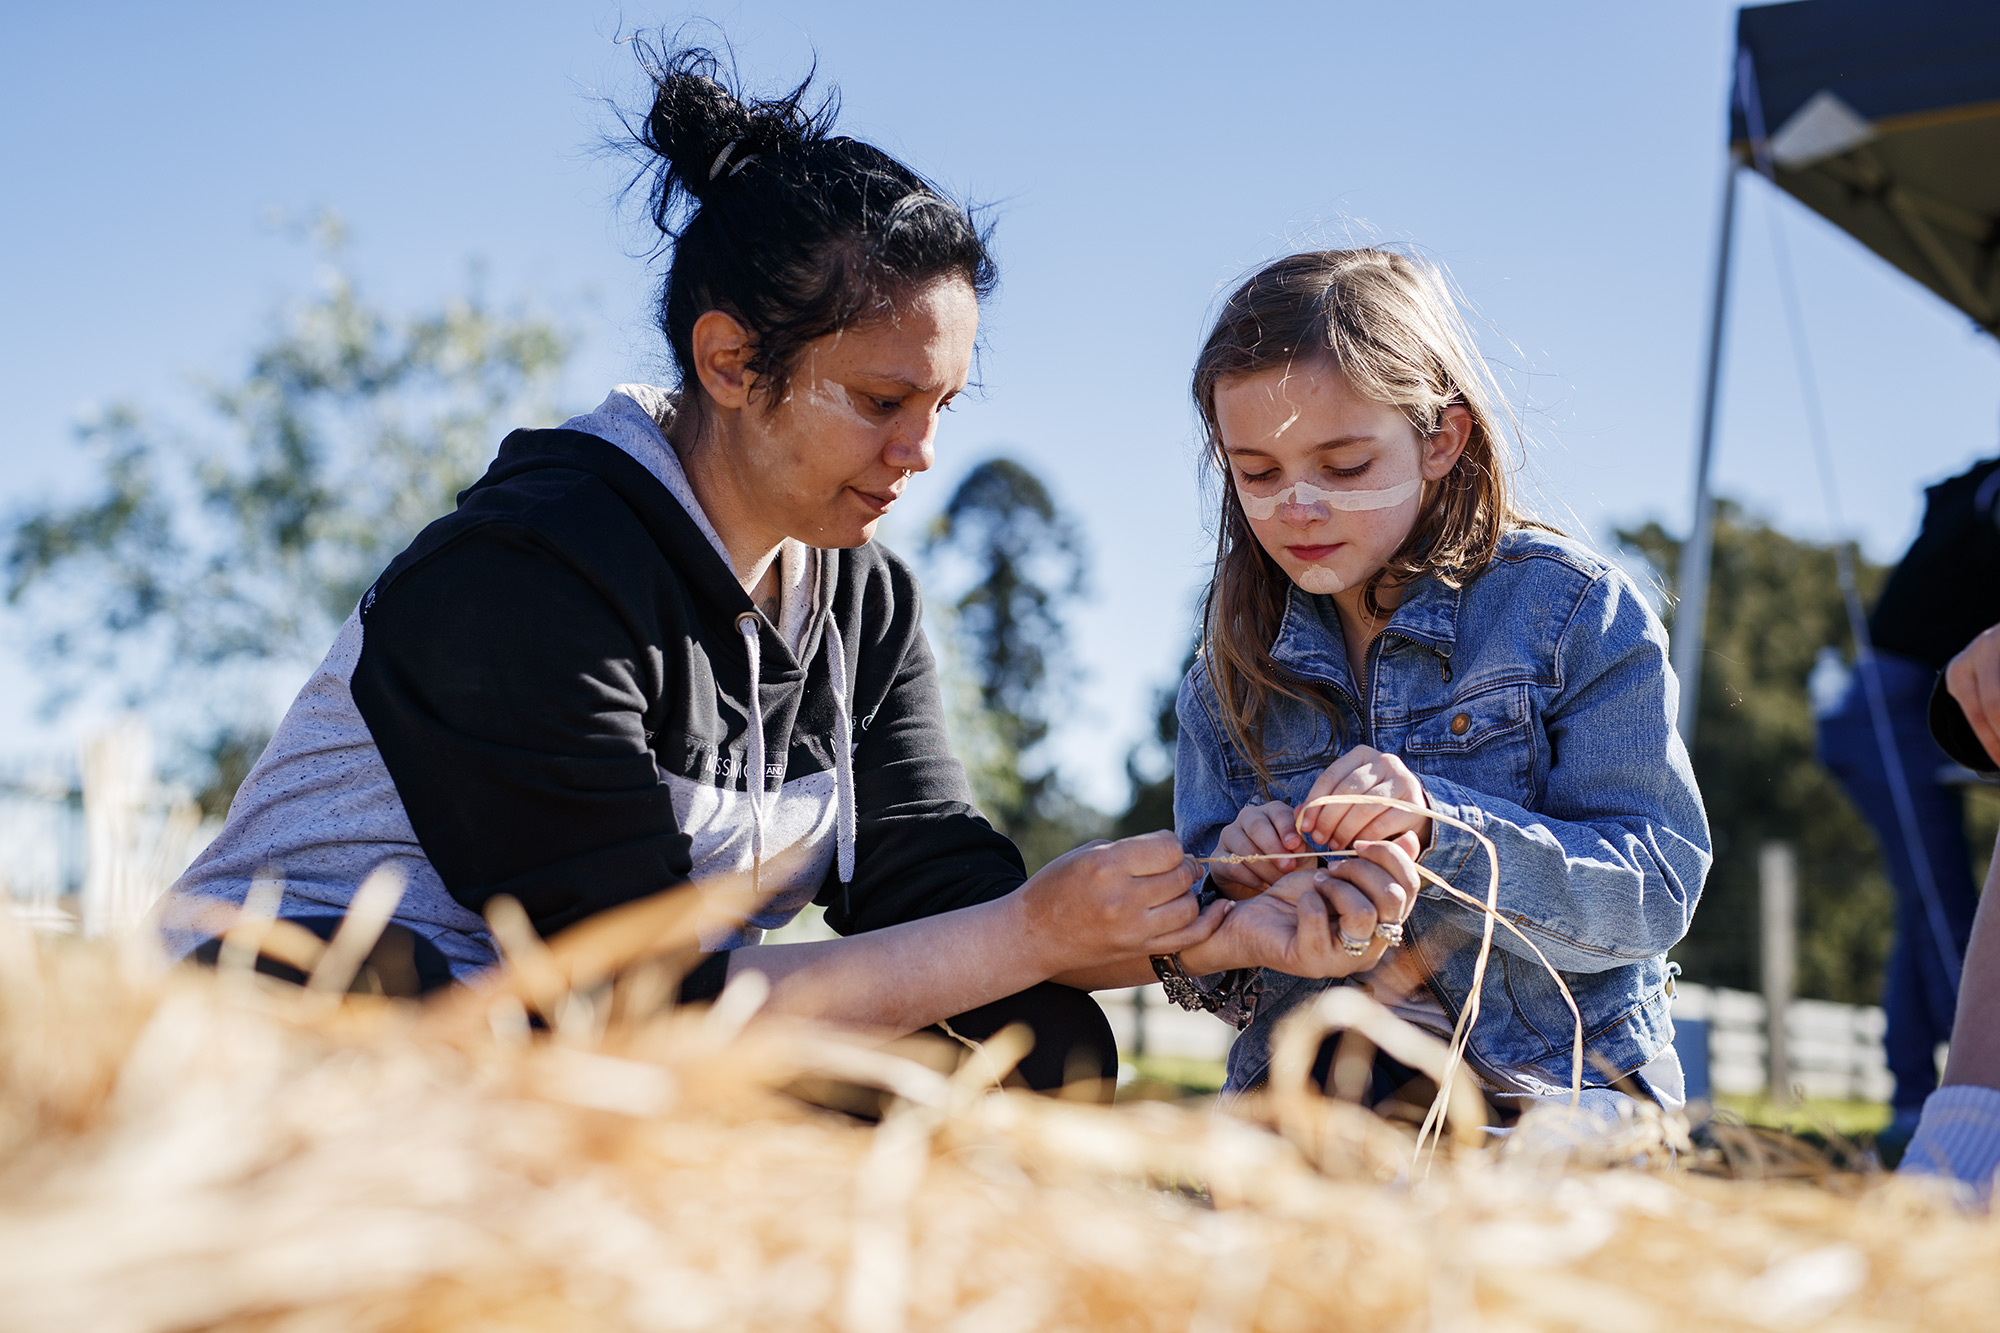 Woman showing child how to weave in outdoor setting, with weaving material in foreground.